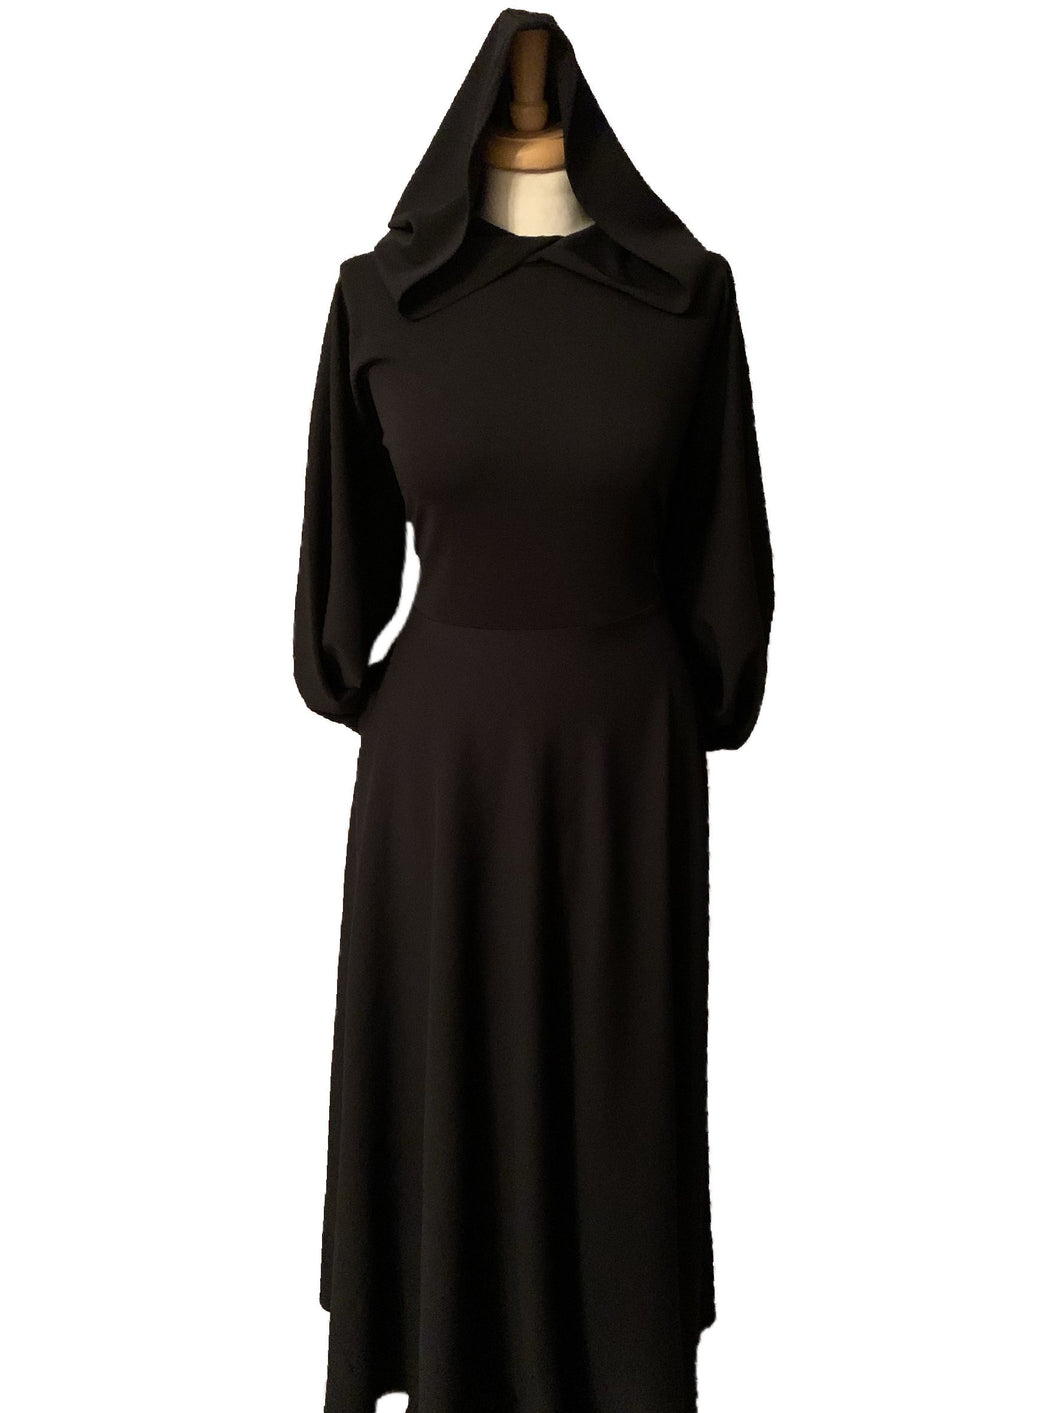 The Haya hooded Dress